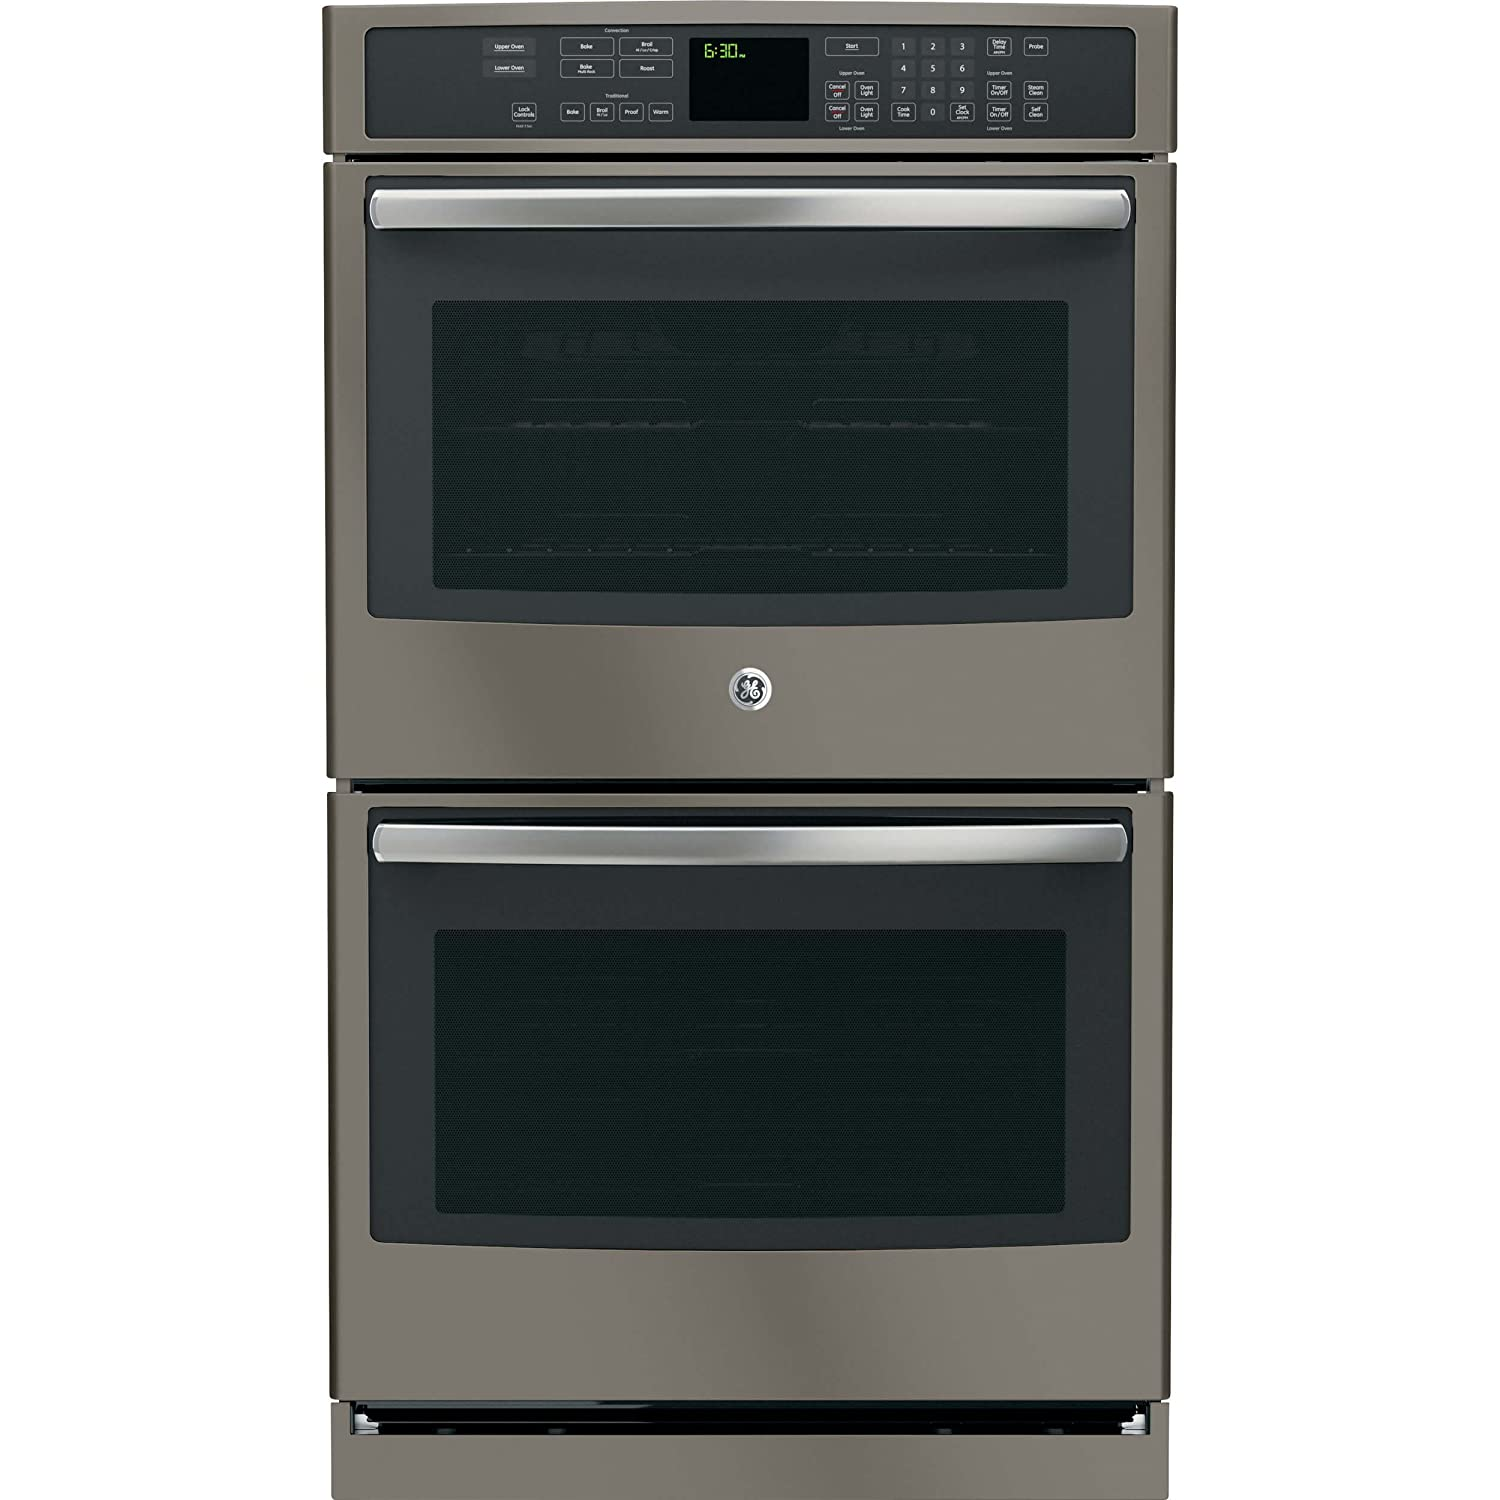 GE PT7550EHES Profile 30' Slate Electric Double Wall Oven - Convection